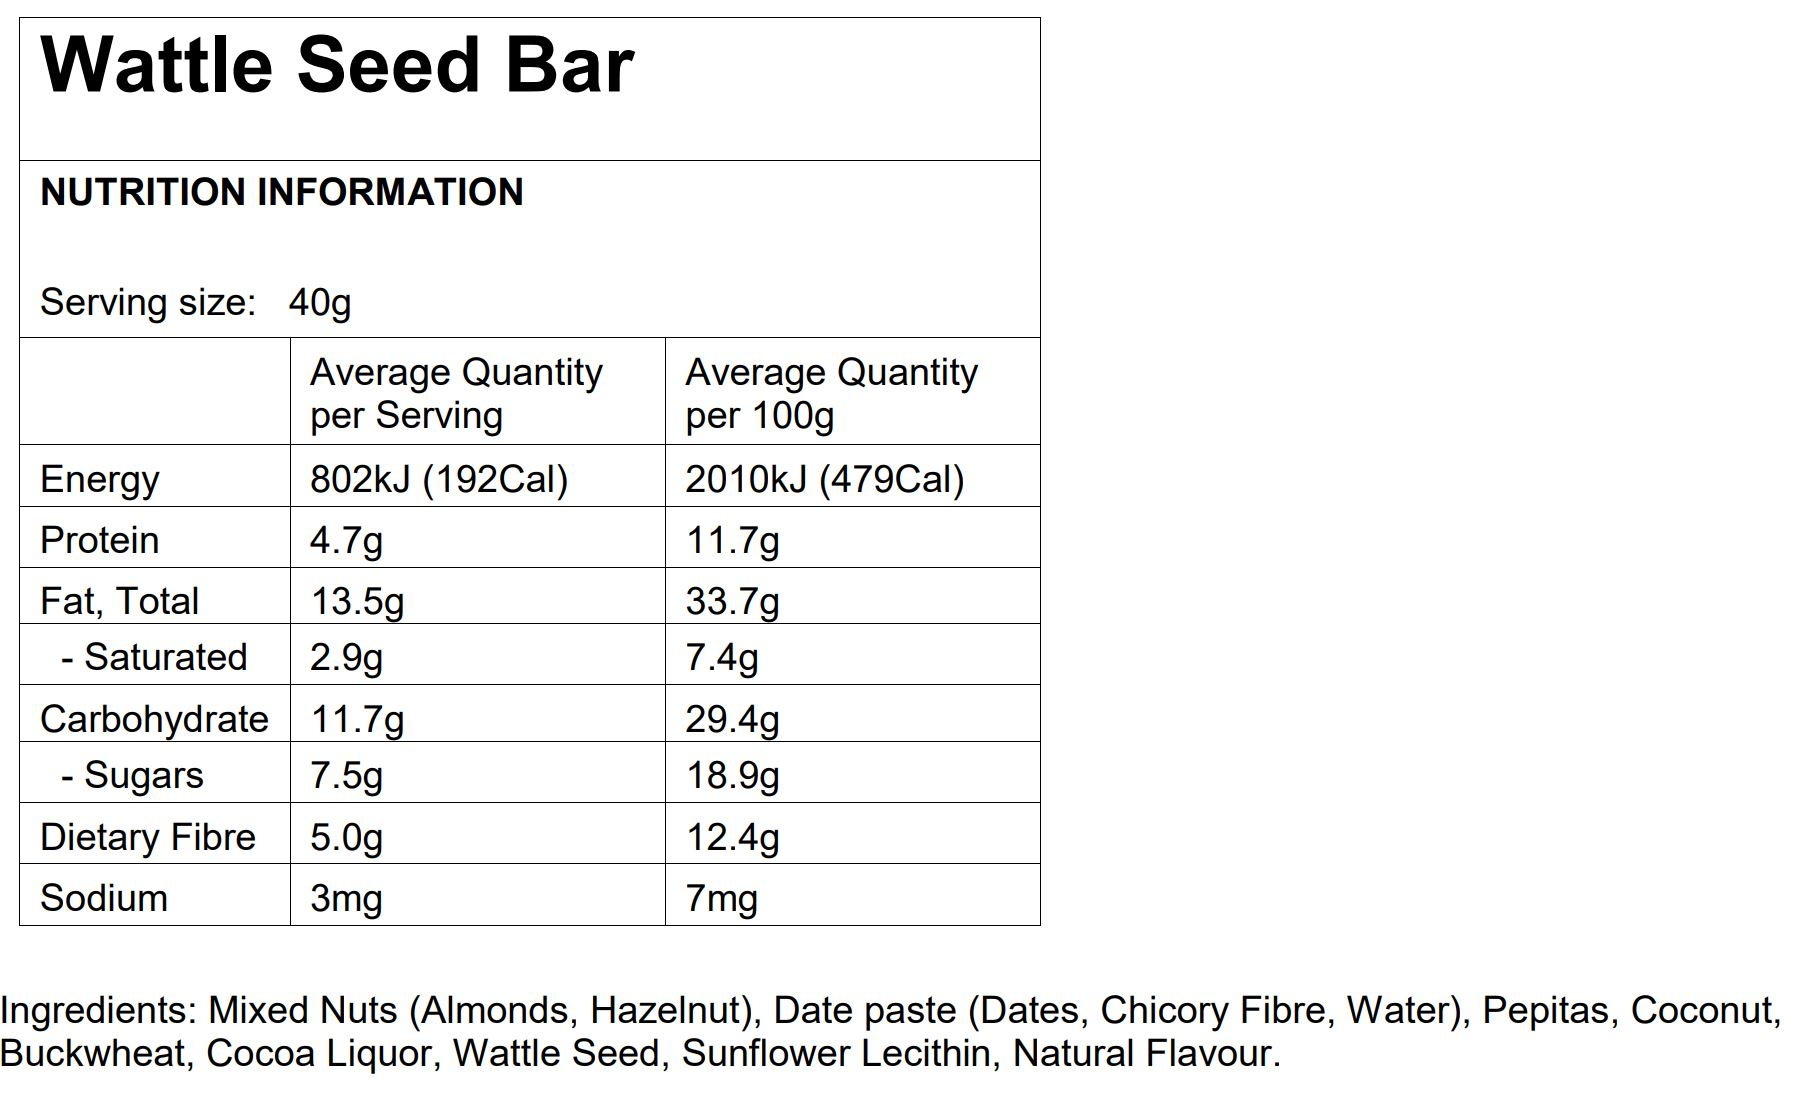 Wattle seed health bar nutritional information